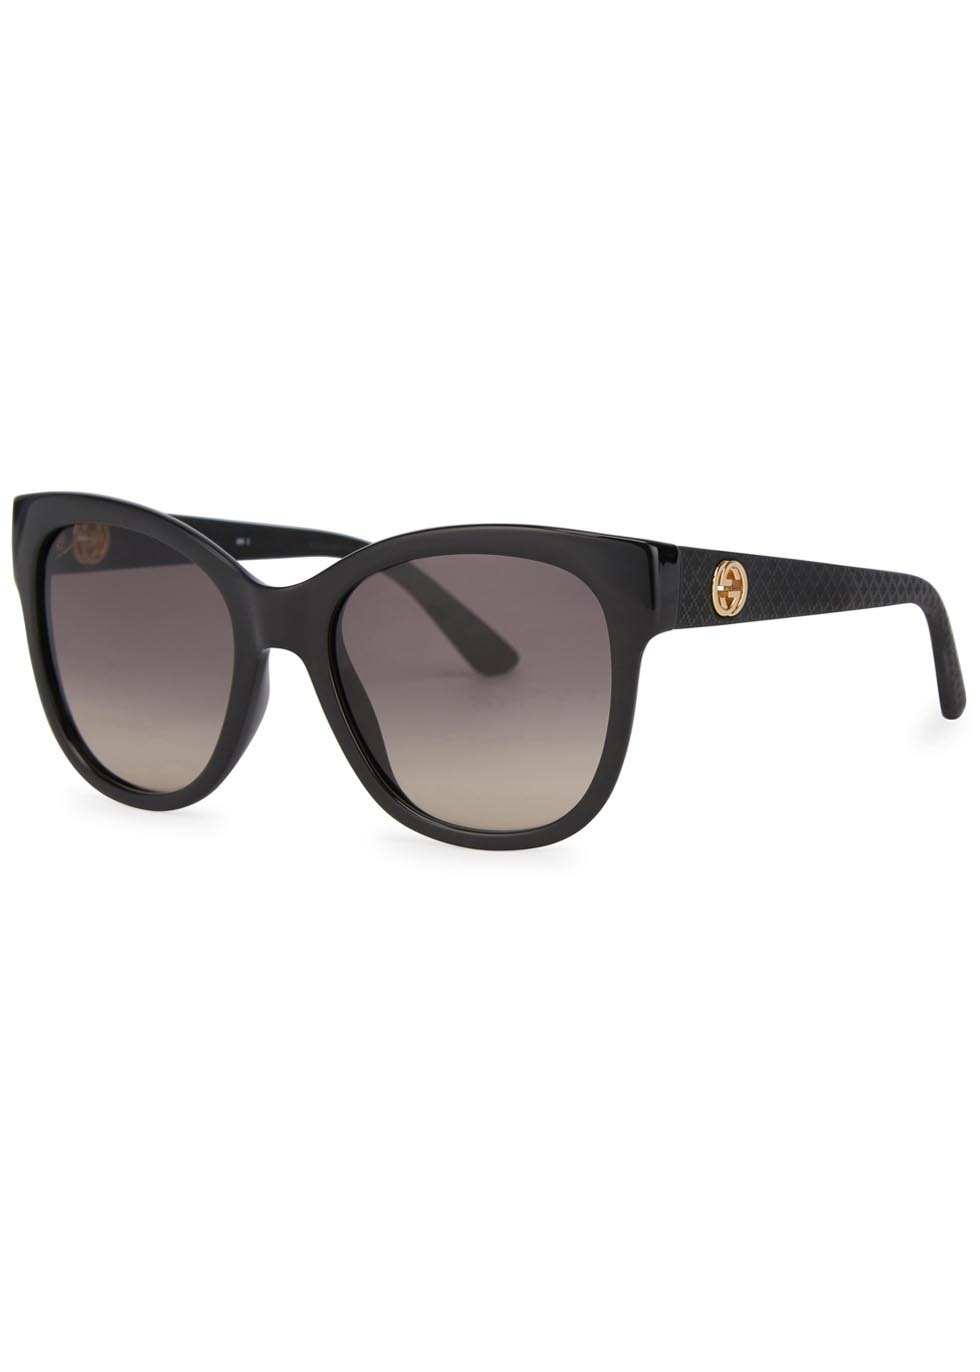 Black Cat Eye Sunglasses - predominant colour: black; occasions: casual, holiday; style: cateye; size: large; material: plastic/rubber; pattern: plain; finish: plain; season: a/w 2015; wardrobe: basic